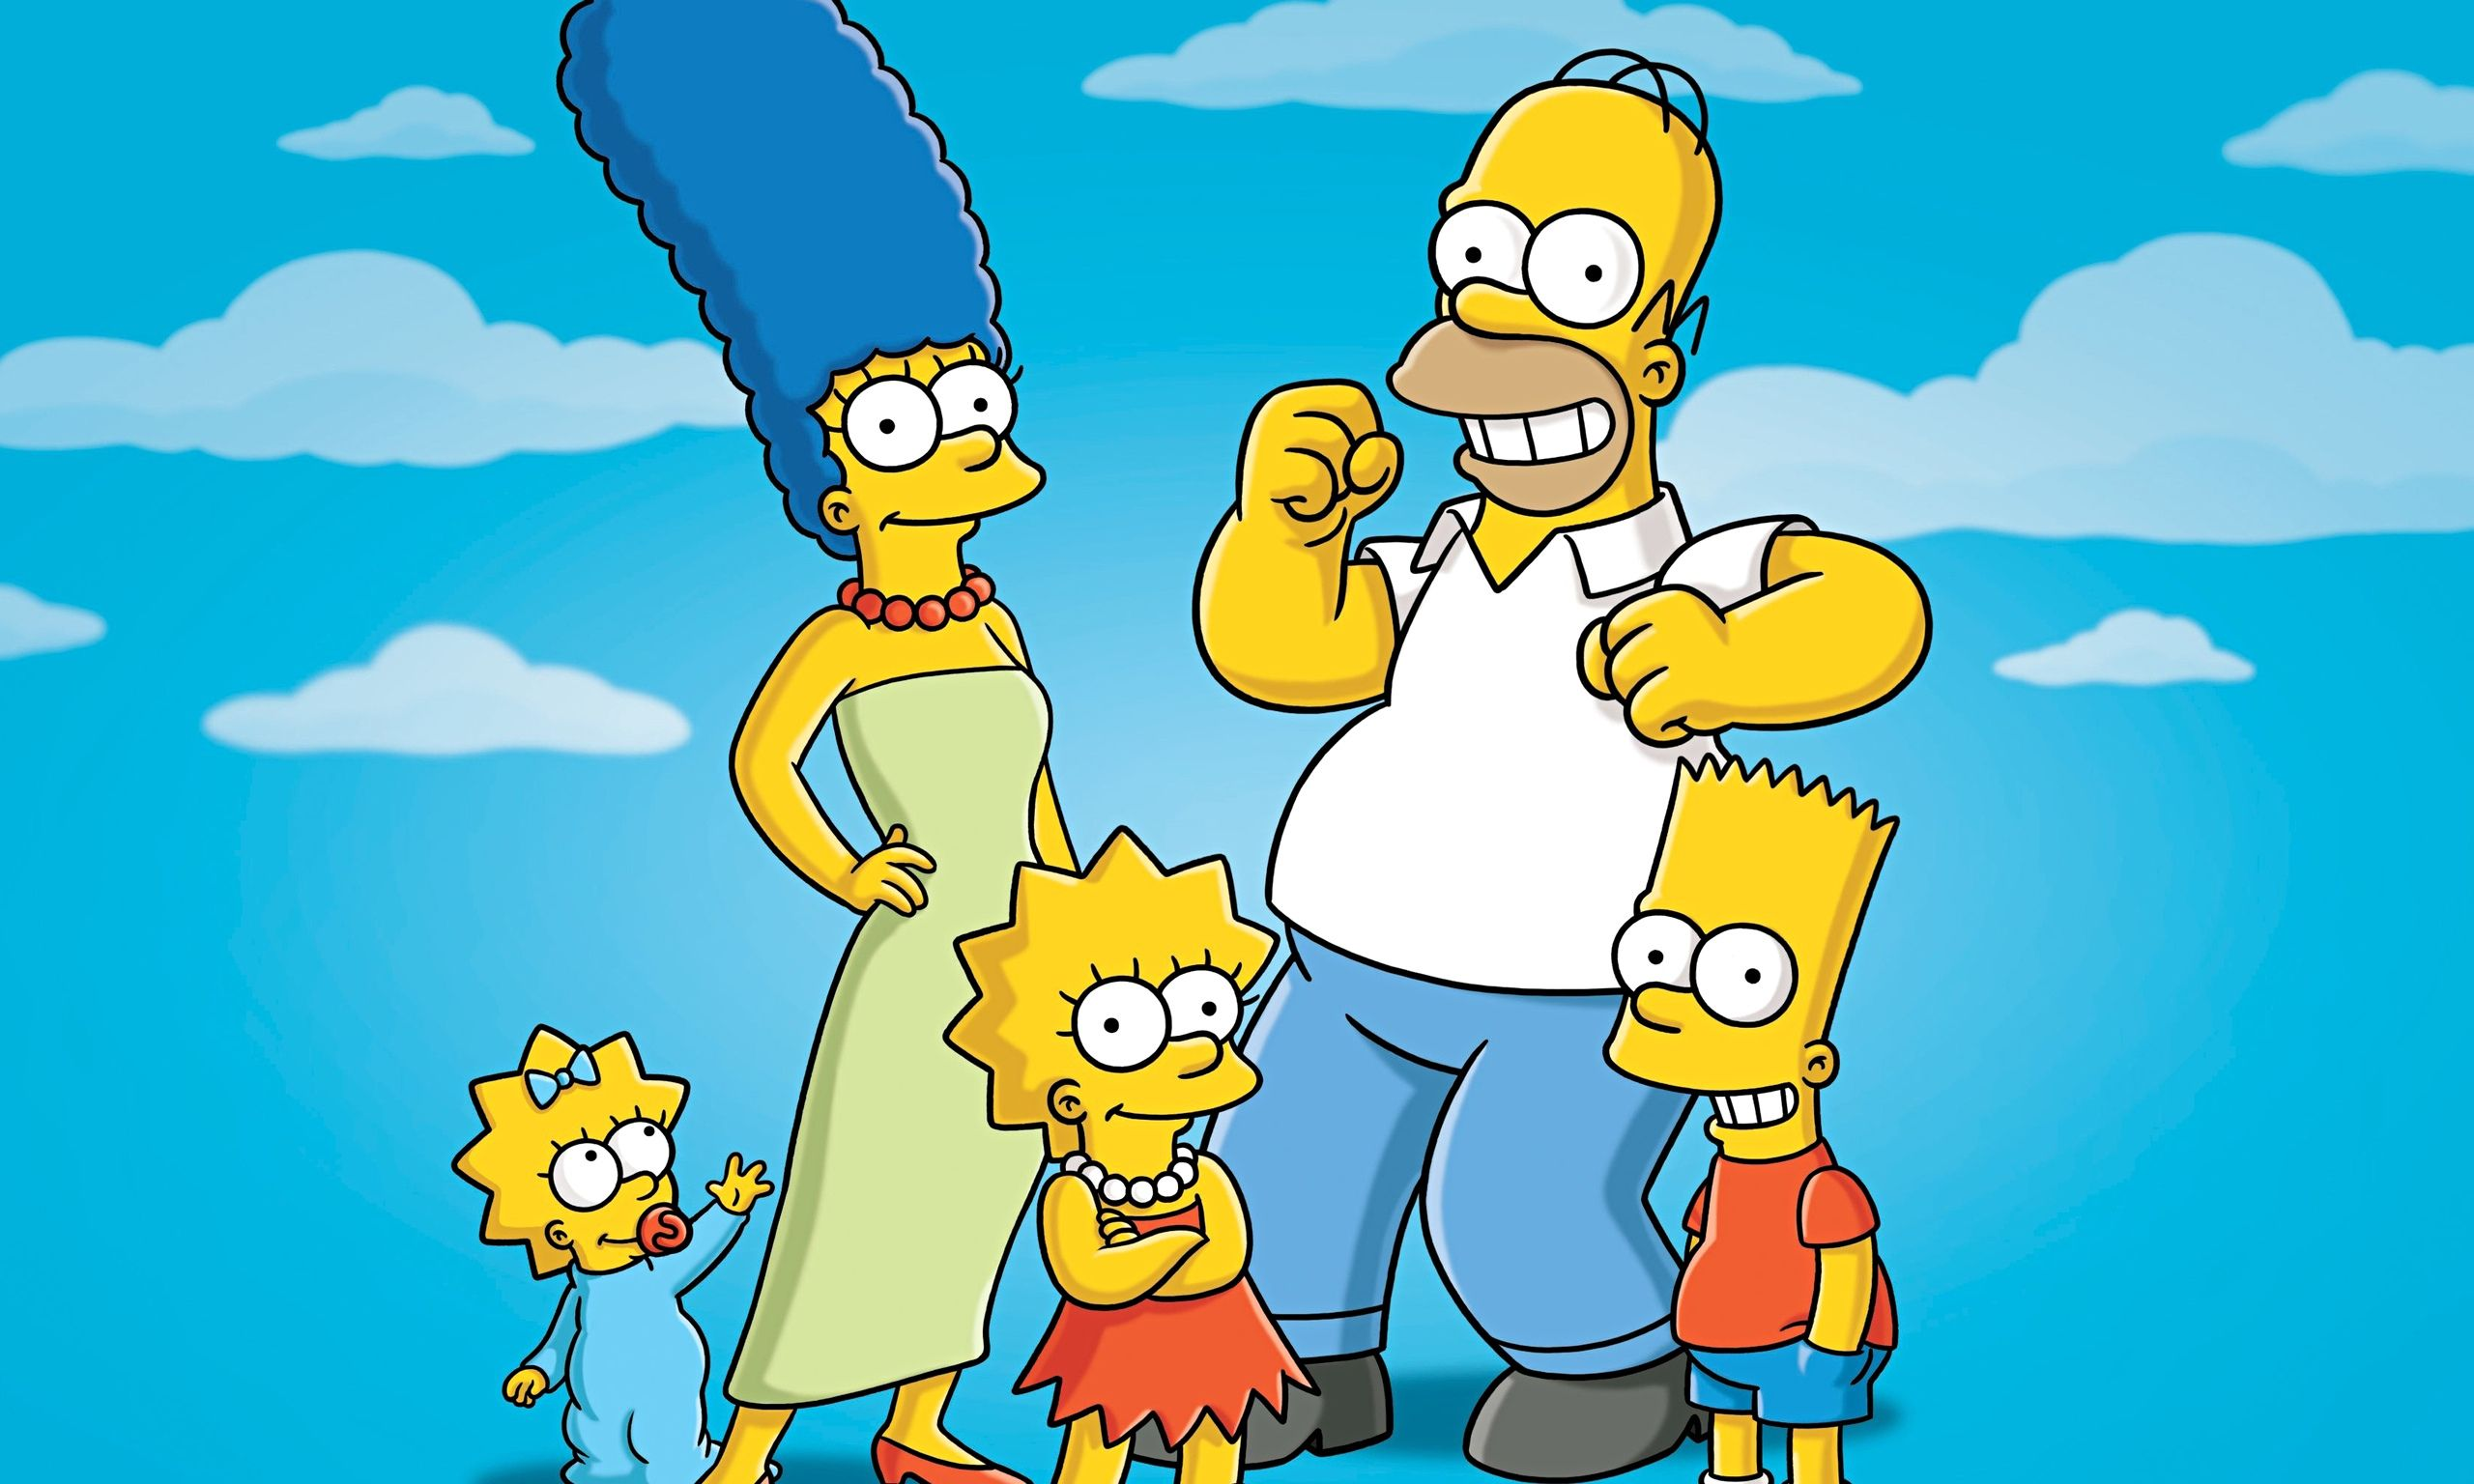 'The Simpsons' to Finally Stream in Correct Aspect Ratio on Disney+ by the End of May